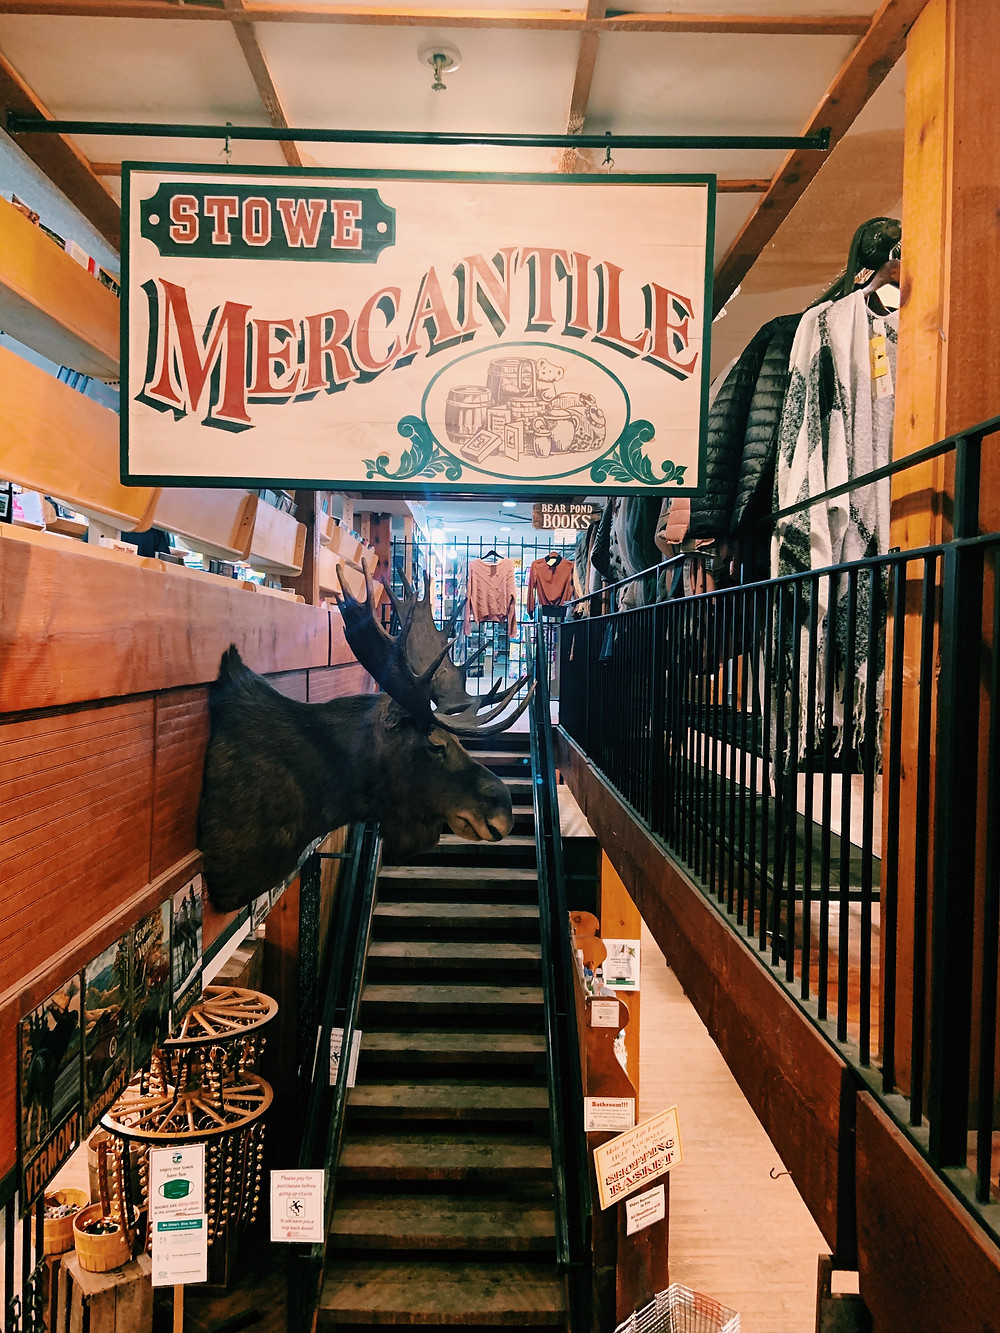 Stowe Mercantile. Downtown Shopping in Stowe, VT